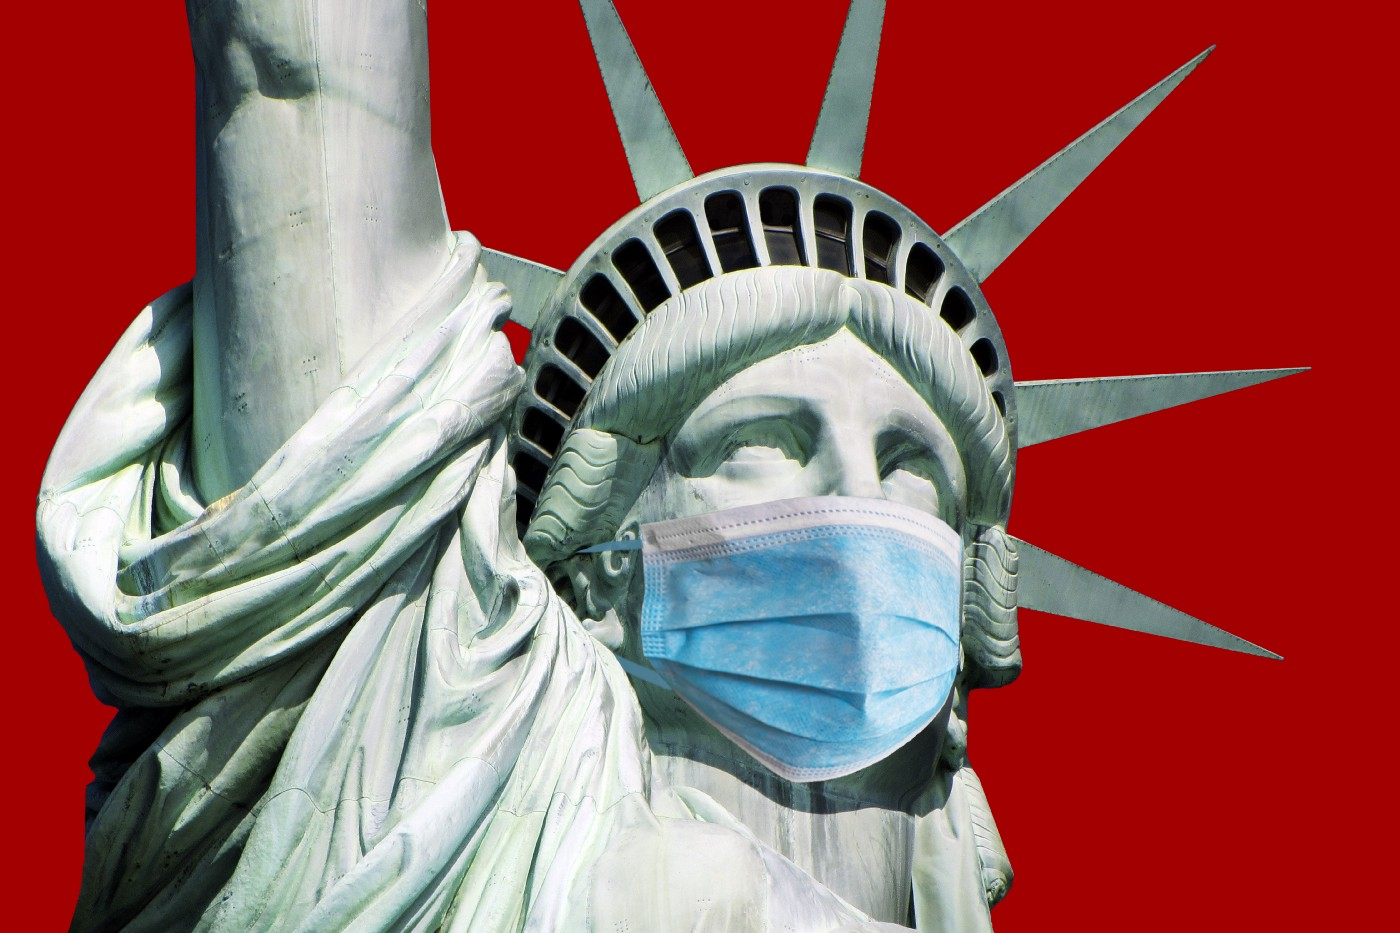 A close up of the Statue of Liberty wearing a surgical mask.